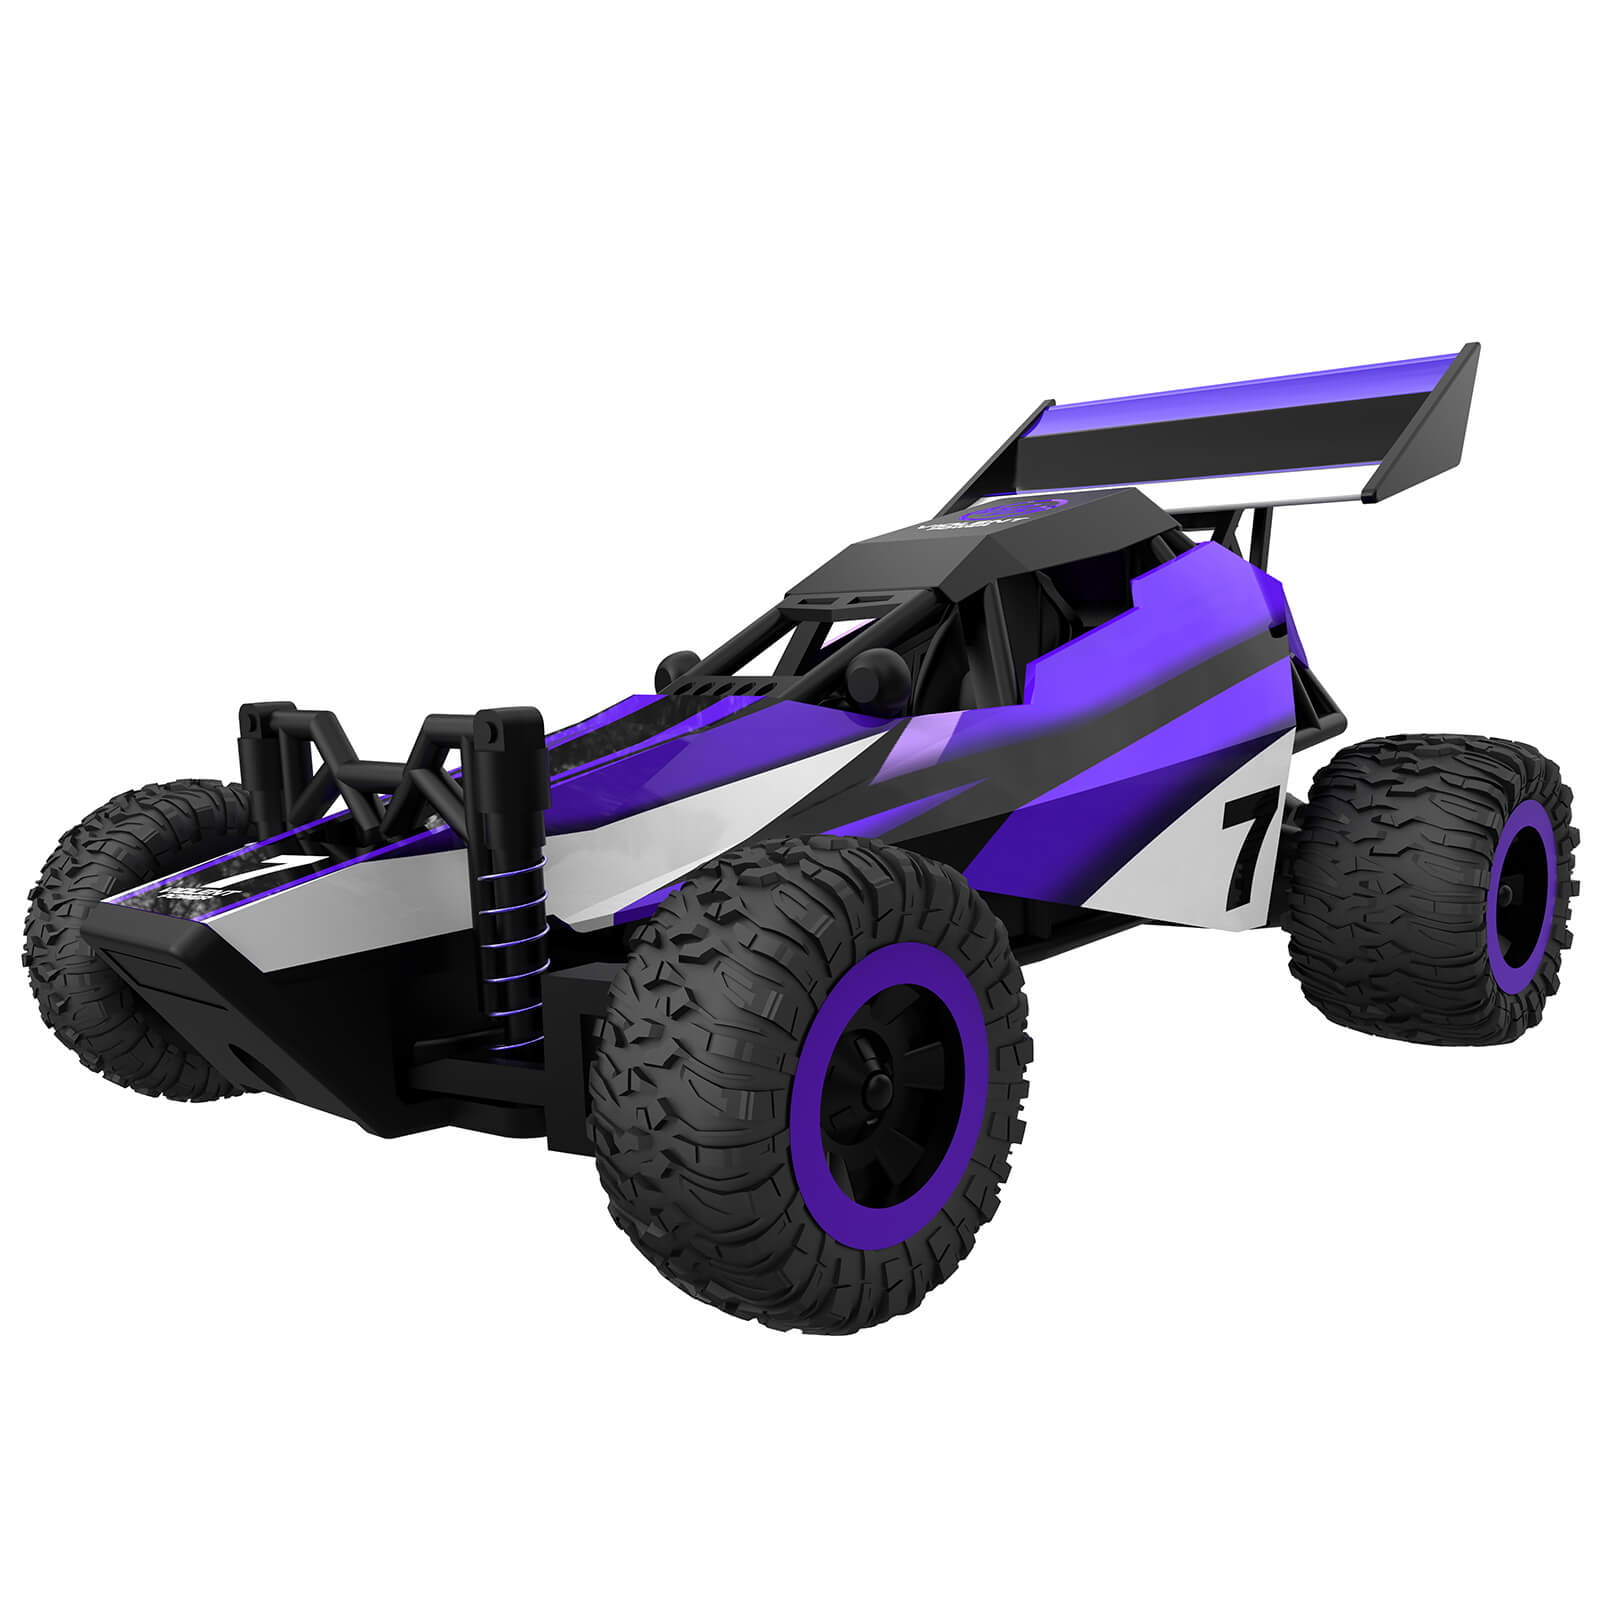 RED5 Mini Power Buggy - Purple/Black